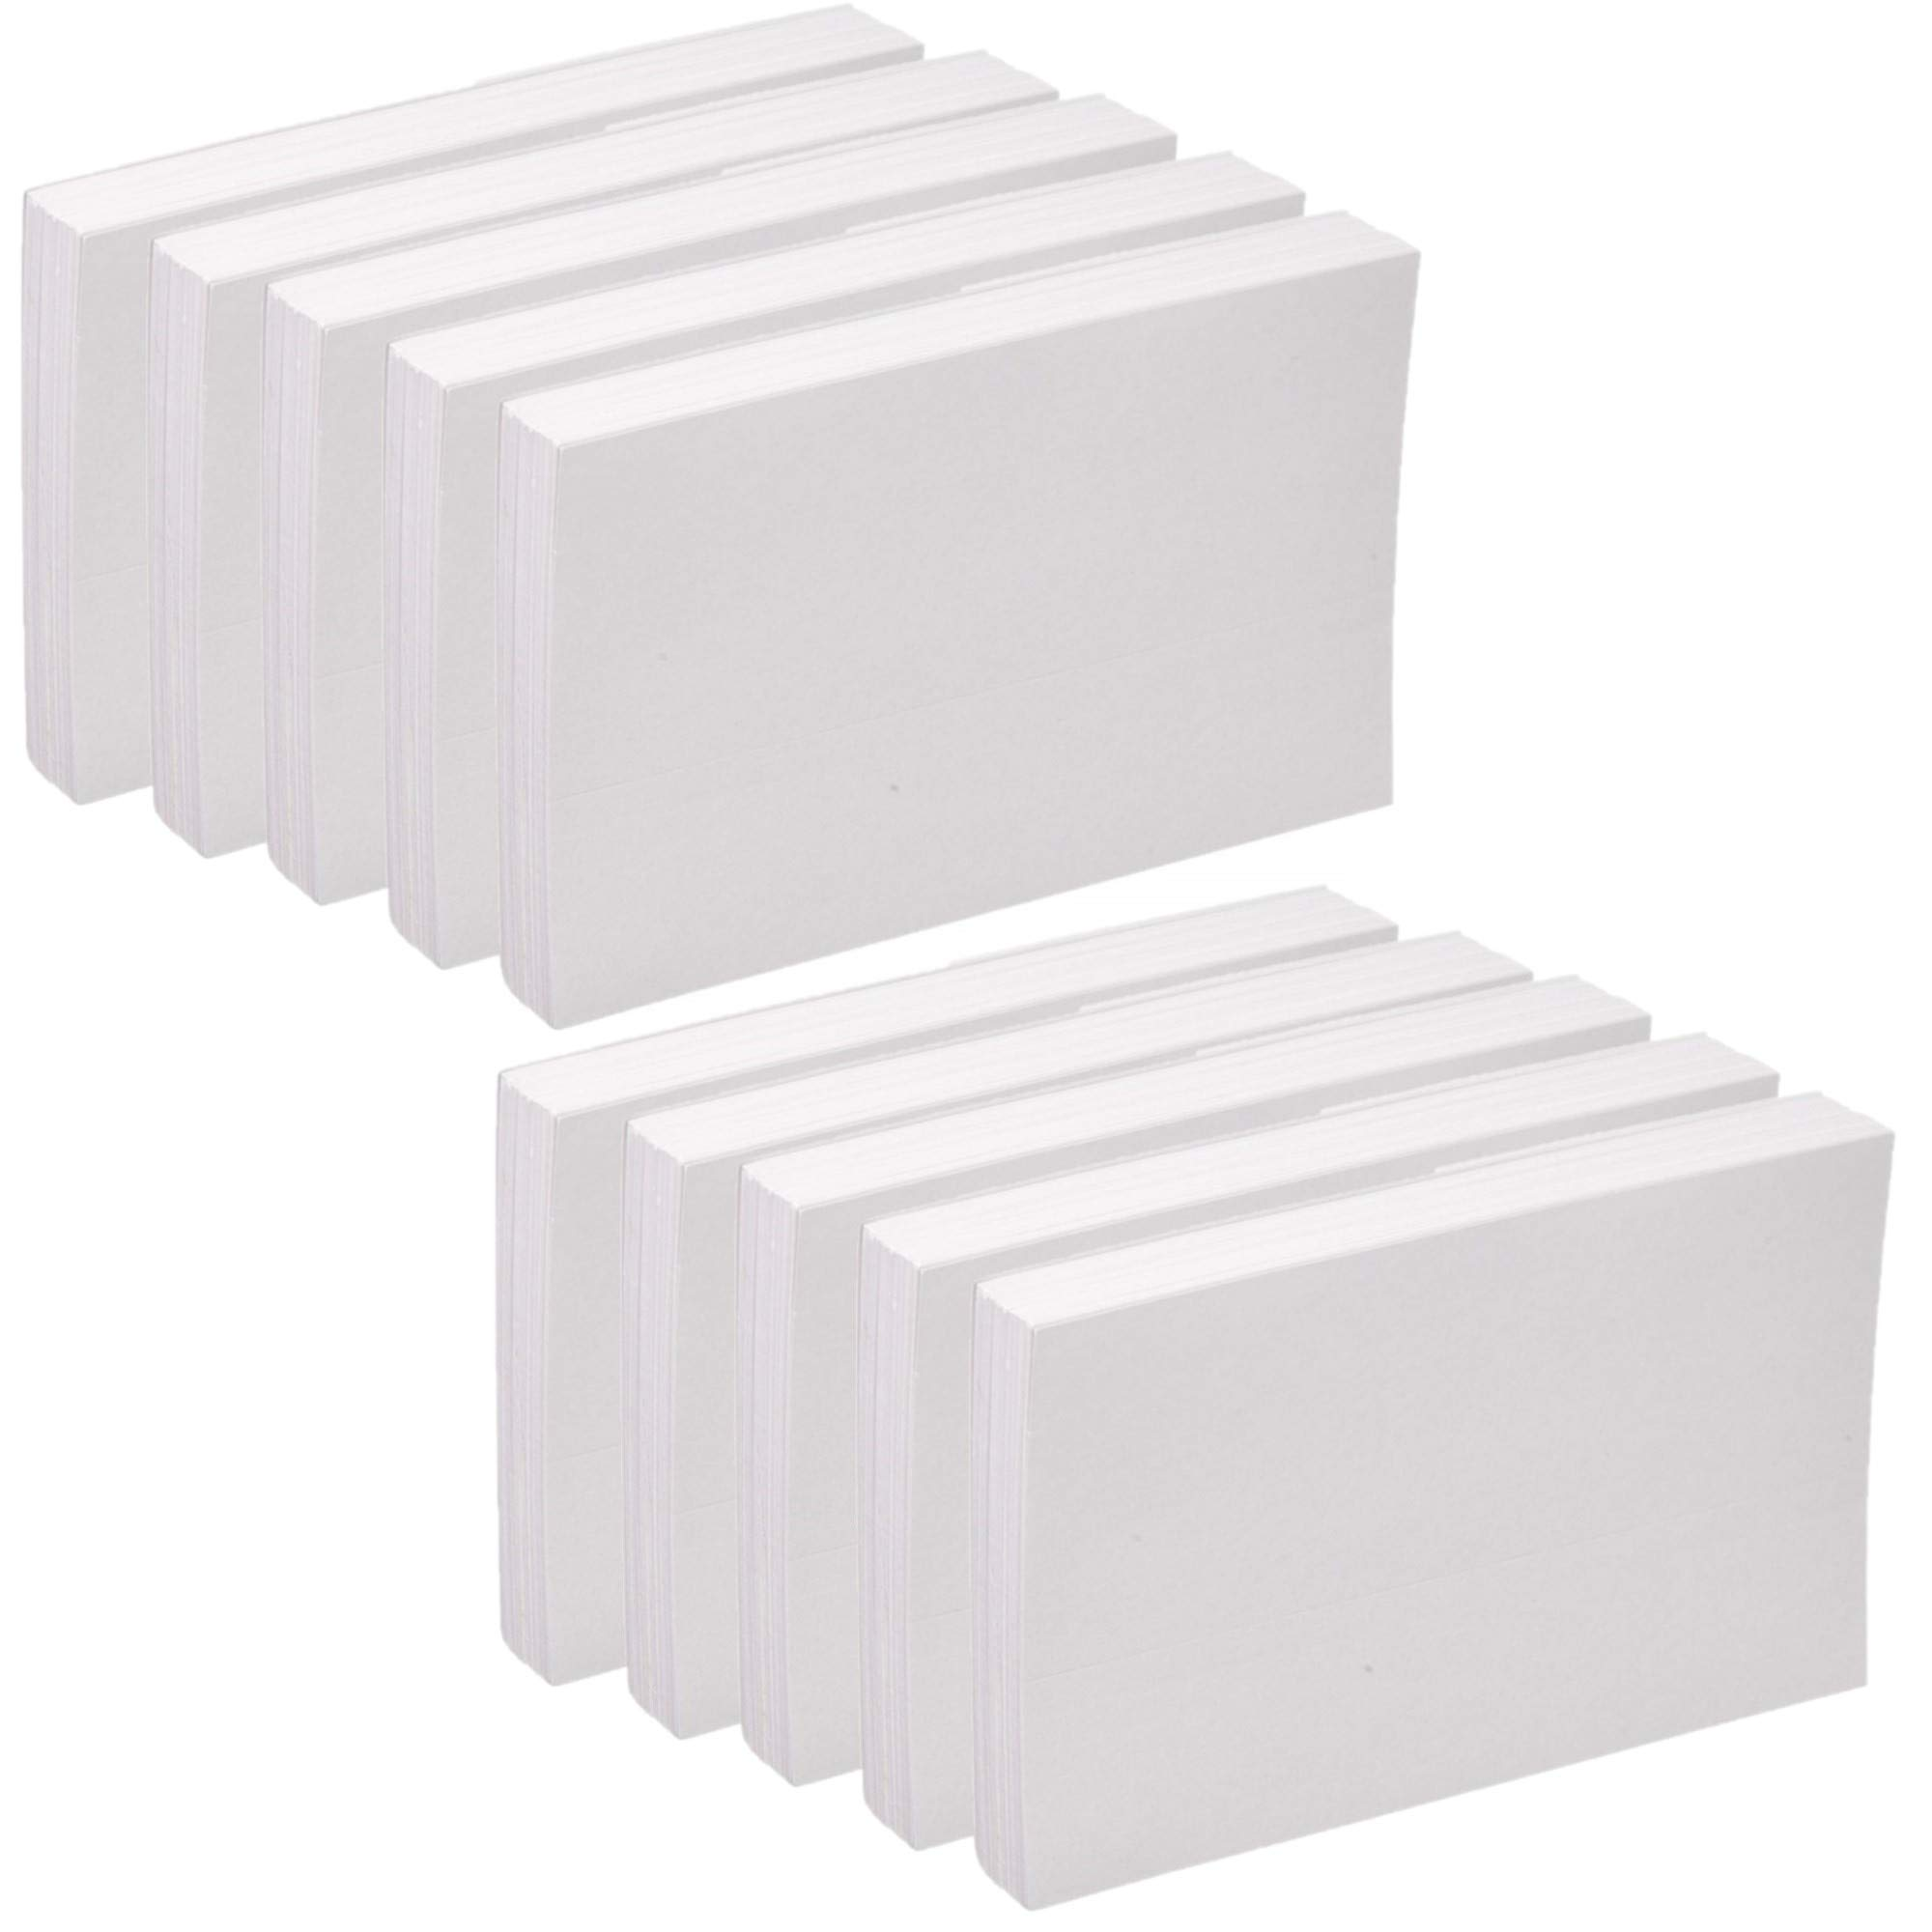 Oxford Blank Index Cards, 5'' x 8'', White, 100/Pack (10) by Oxford